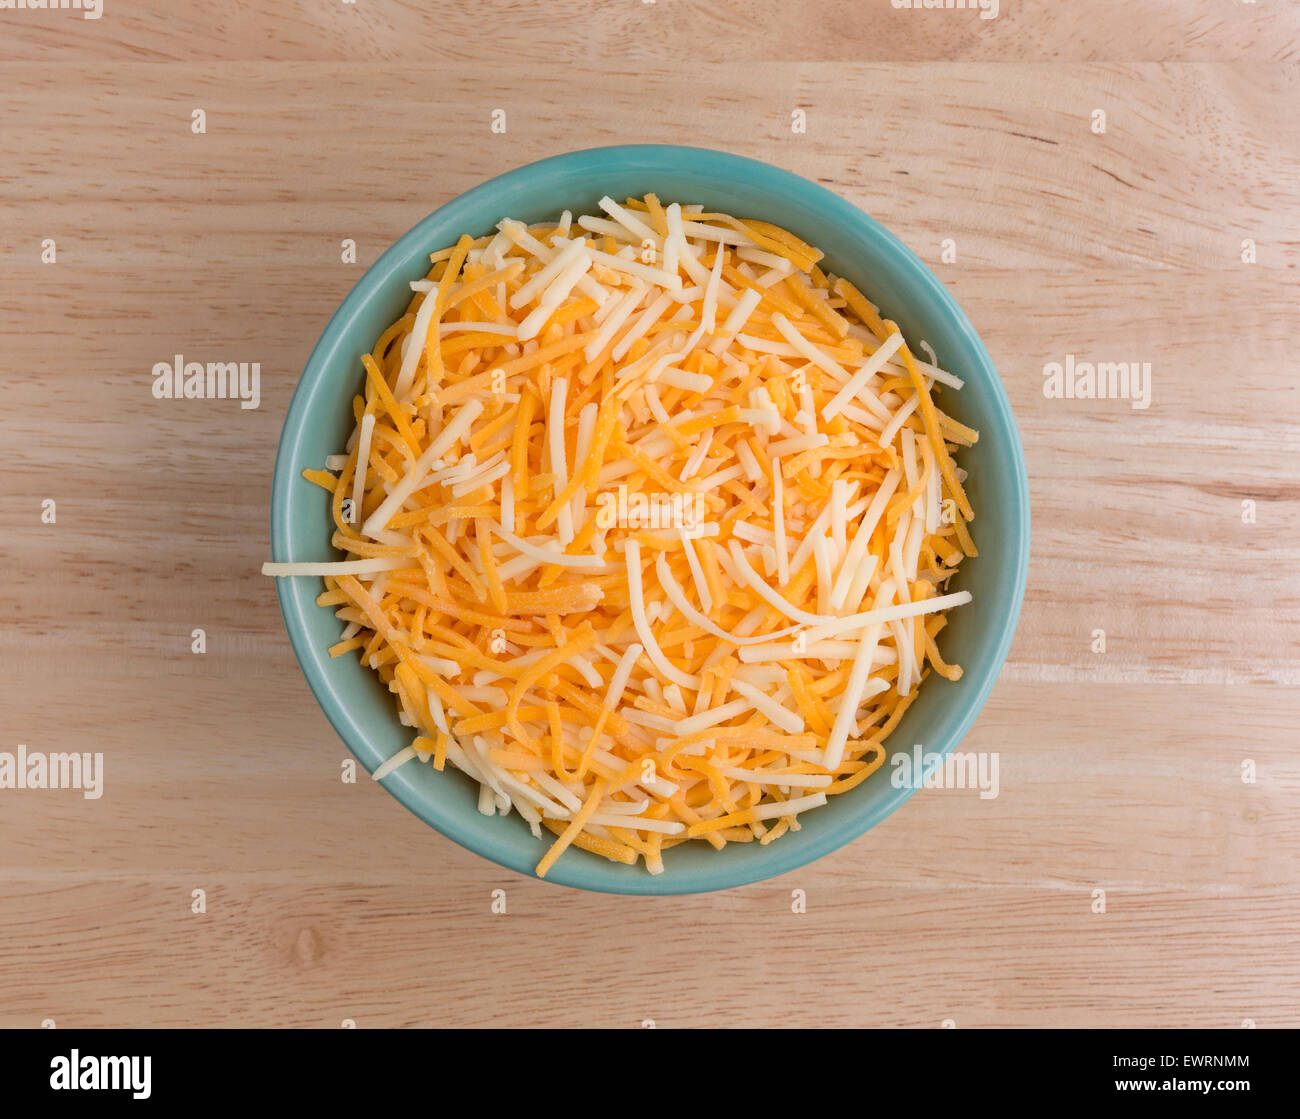 Top view of a small bowl filled with shredded white cheddar, sharp cheddar and mild cheddar cheeses atop a wood - Stock Image